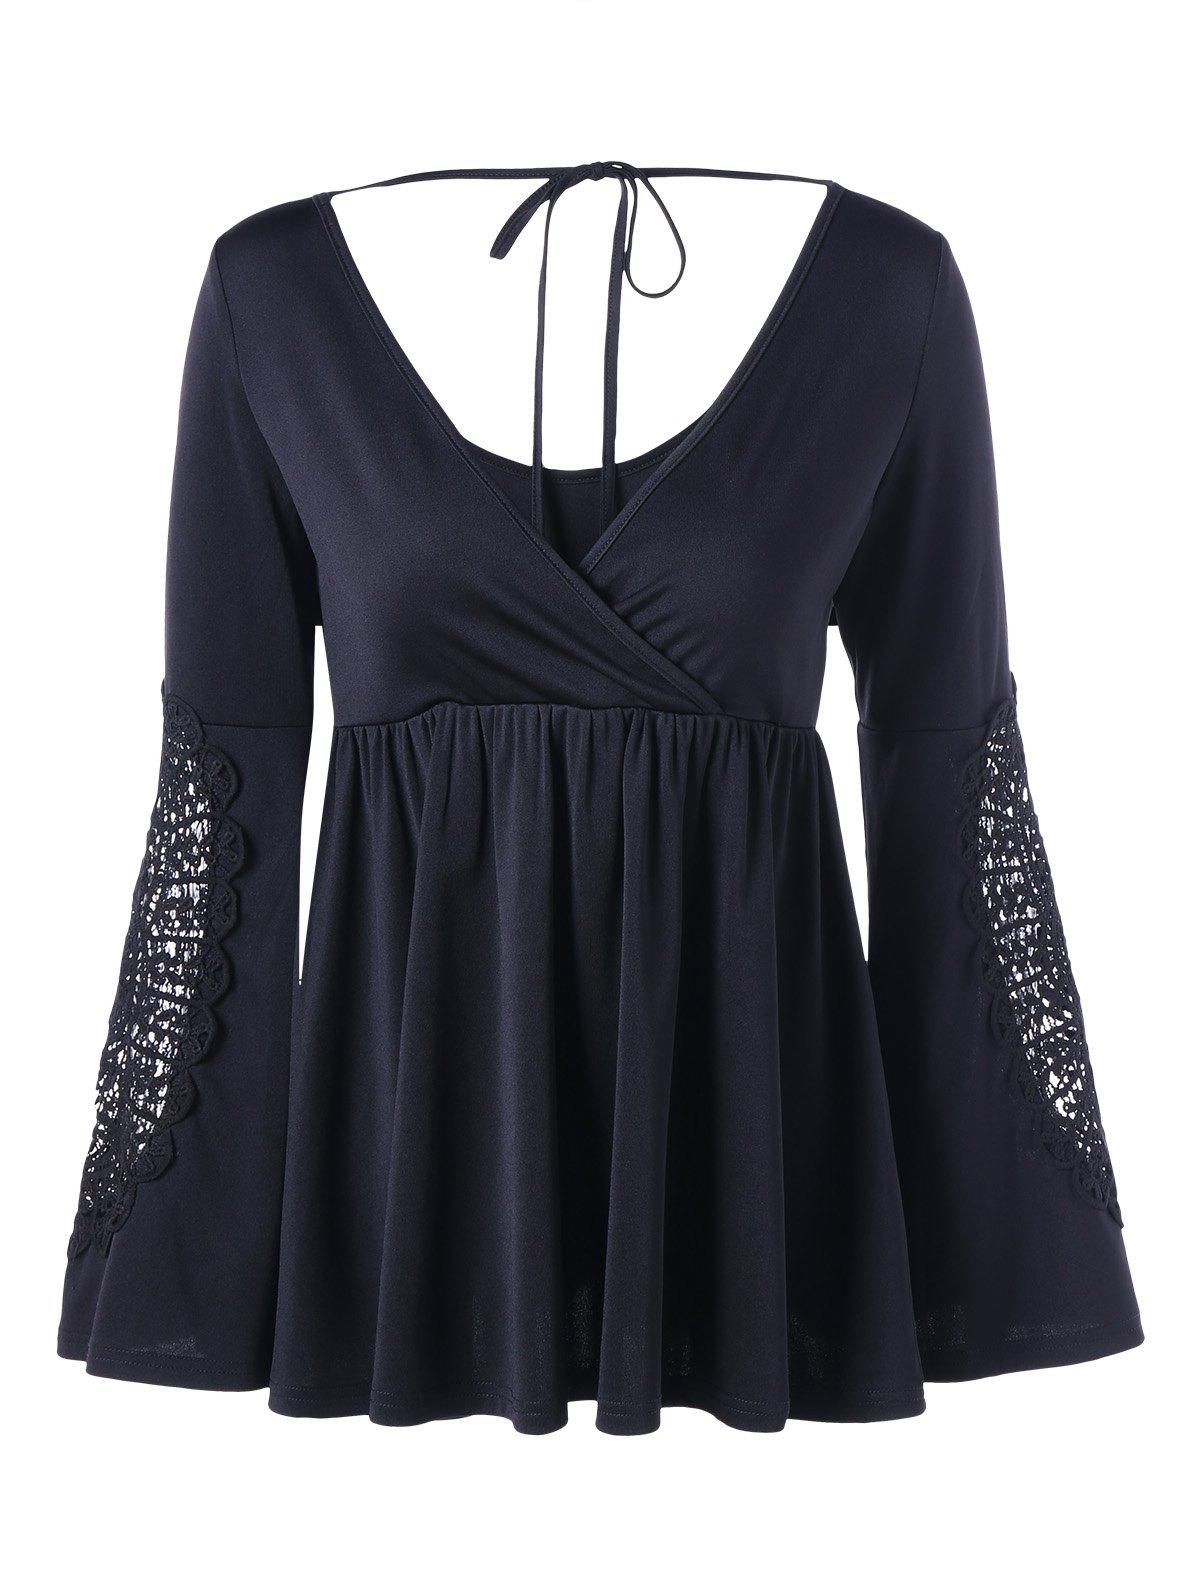 Crochet Insert Bell Sleeve Surplice Neck TopWOMEN<br><br>Size: 2XL; Color: BLACK; Material: Polyester,Spandex; Shirt Length: Regular; Sleeve Length: Full; Collar: V-Neck; Style: Fashion; Sleeve Type: Flare Sleeve; Embellishment: Lace; Pattern Type: Solid Color; Season: Fall,Spring; Weight: 0.3590kg; Package Contents: 1 x Top;